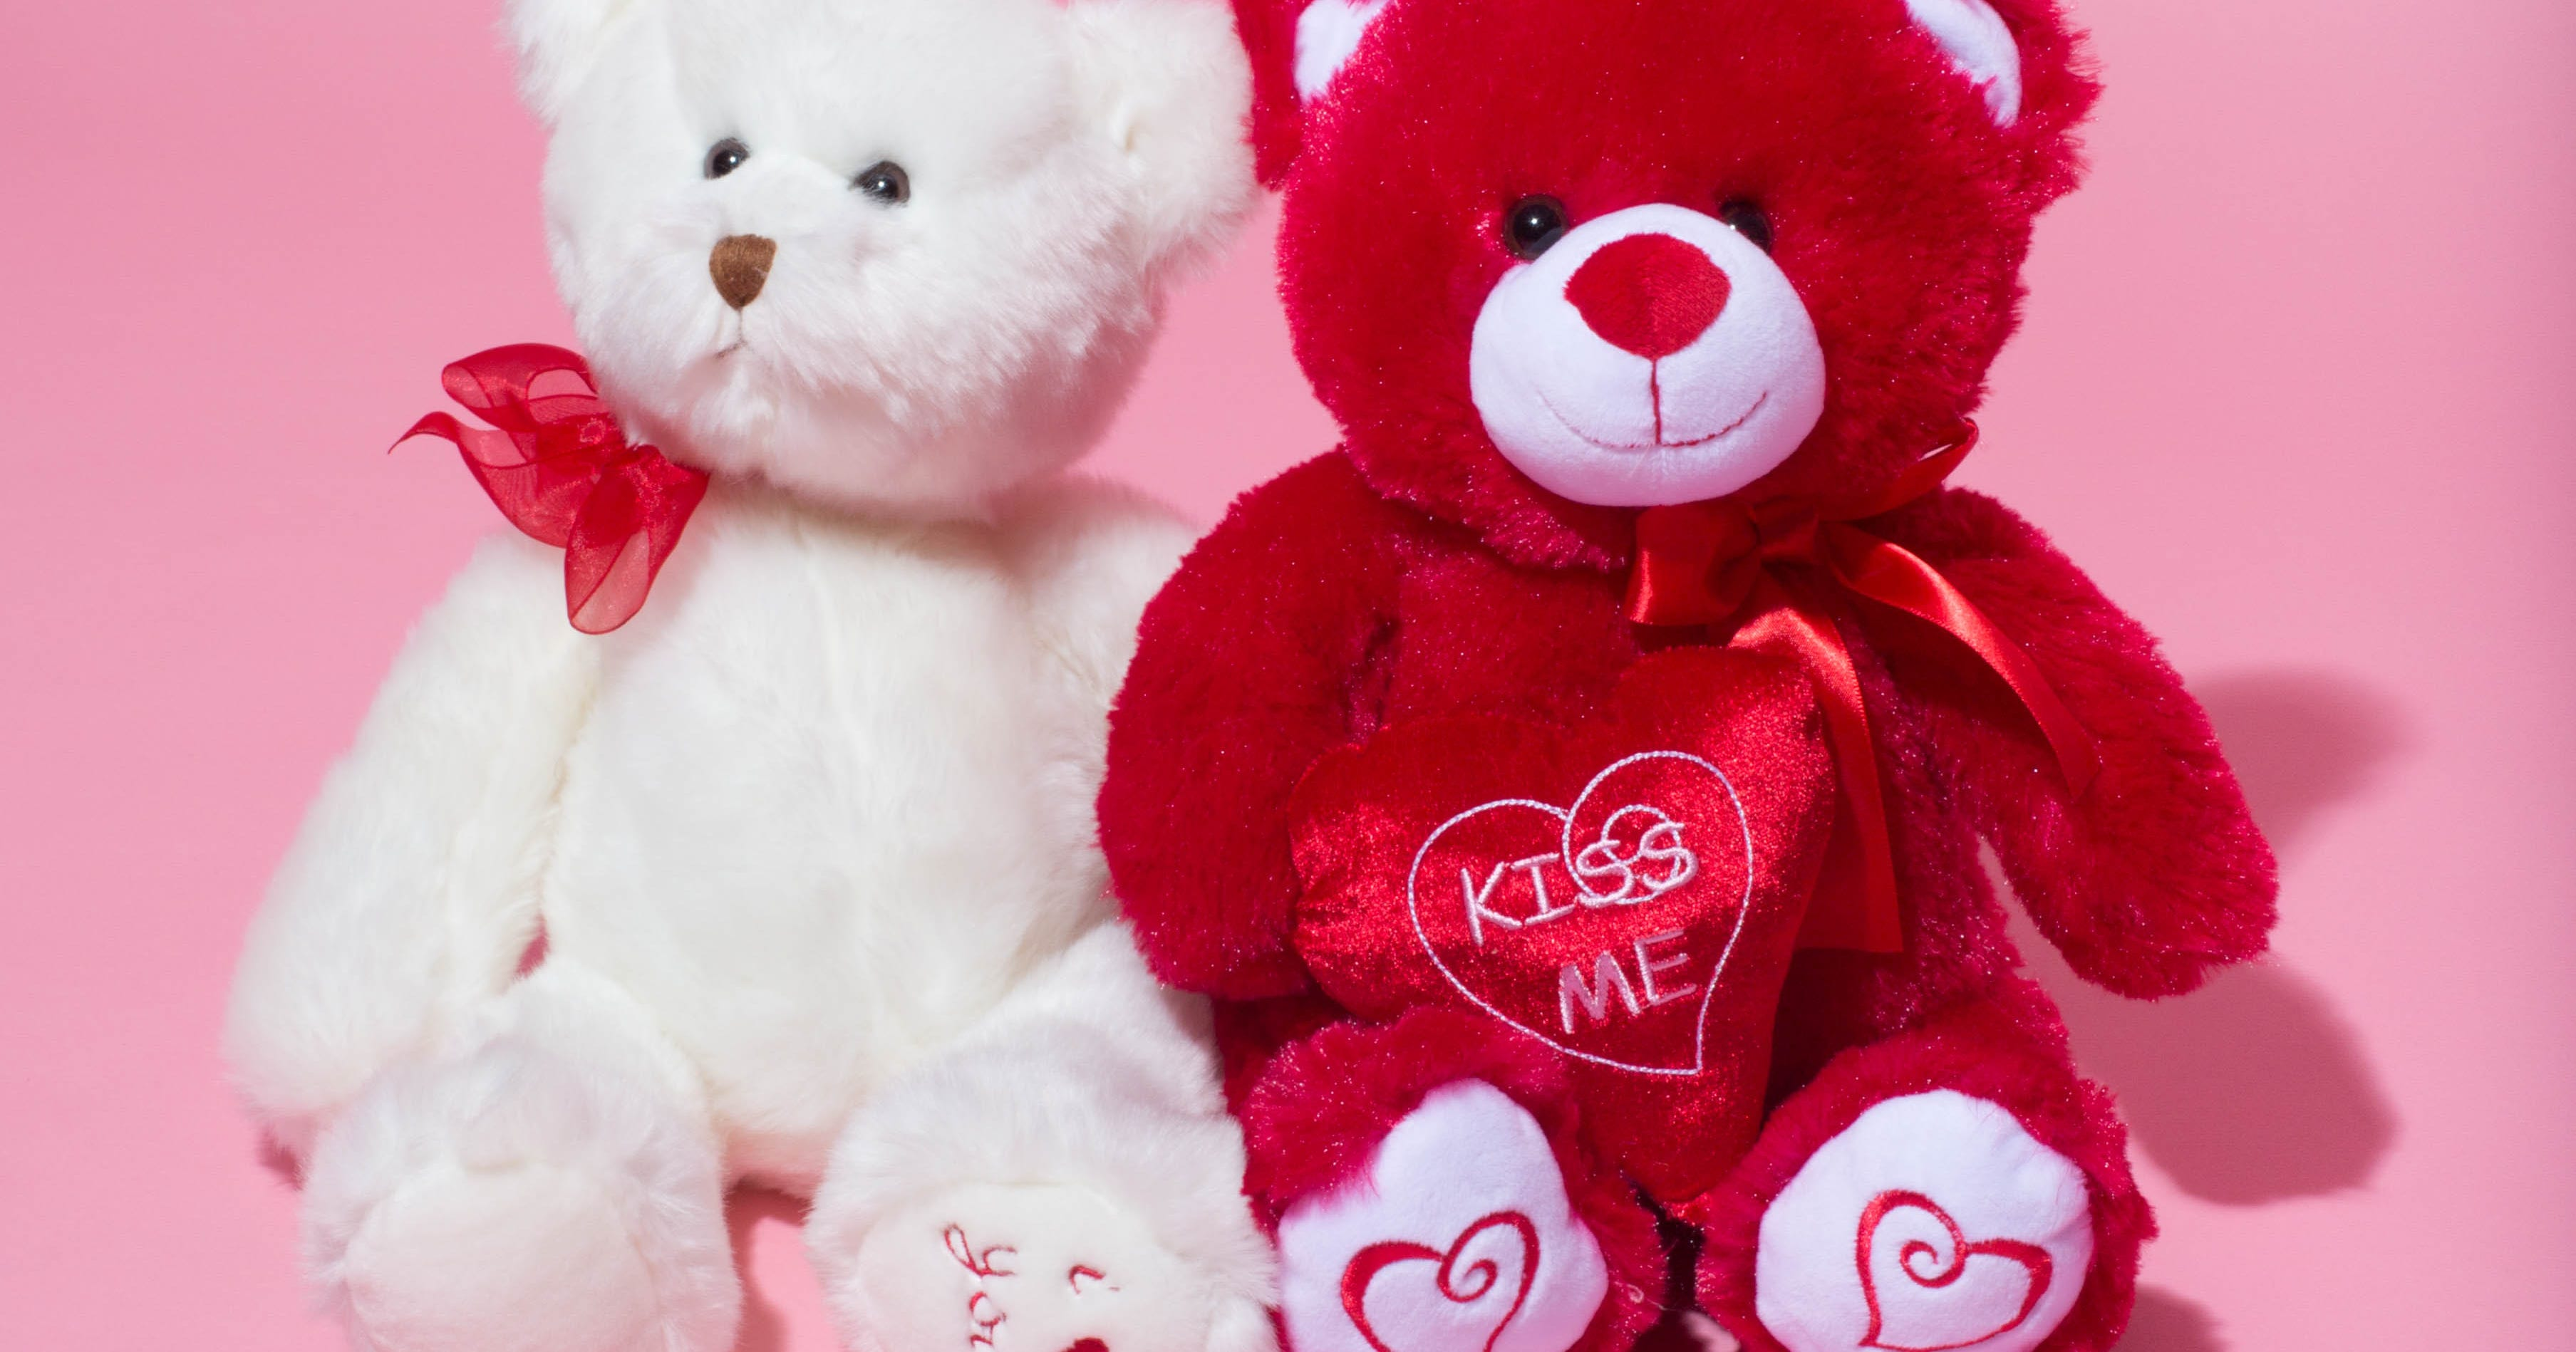 Best Valentines Day Gifts For Couples To Enjoy Together